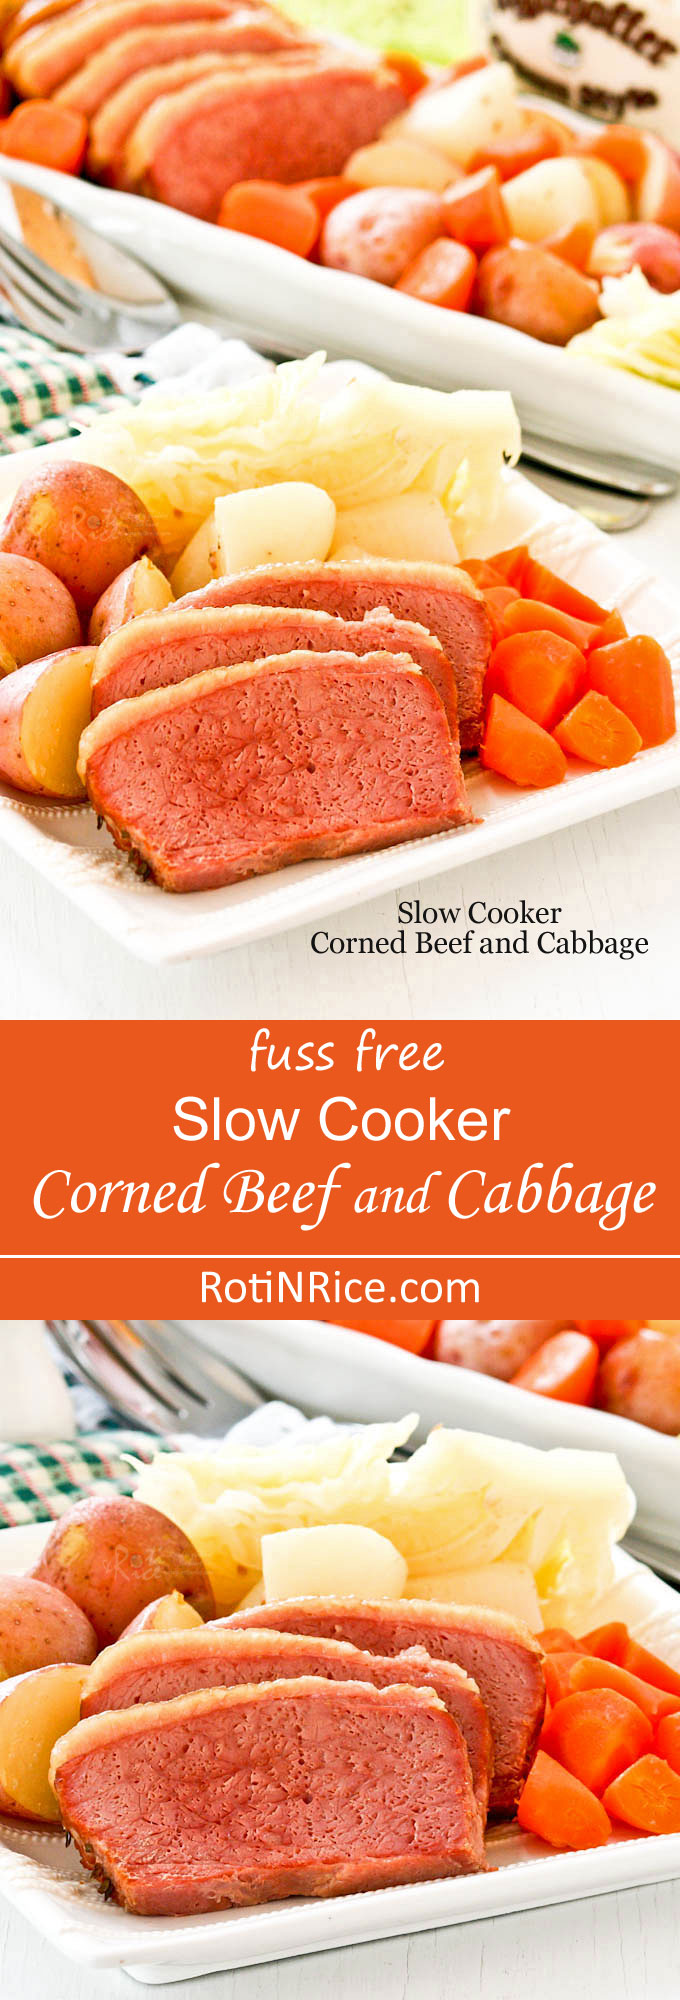 Celebrate St. Patrick's Day with this fuss free Slow Cooker Corned Beef and Cabbage. Only 15 minutes of prep work for a delicious meal to feed a crowd. | RotiNRice.com